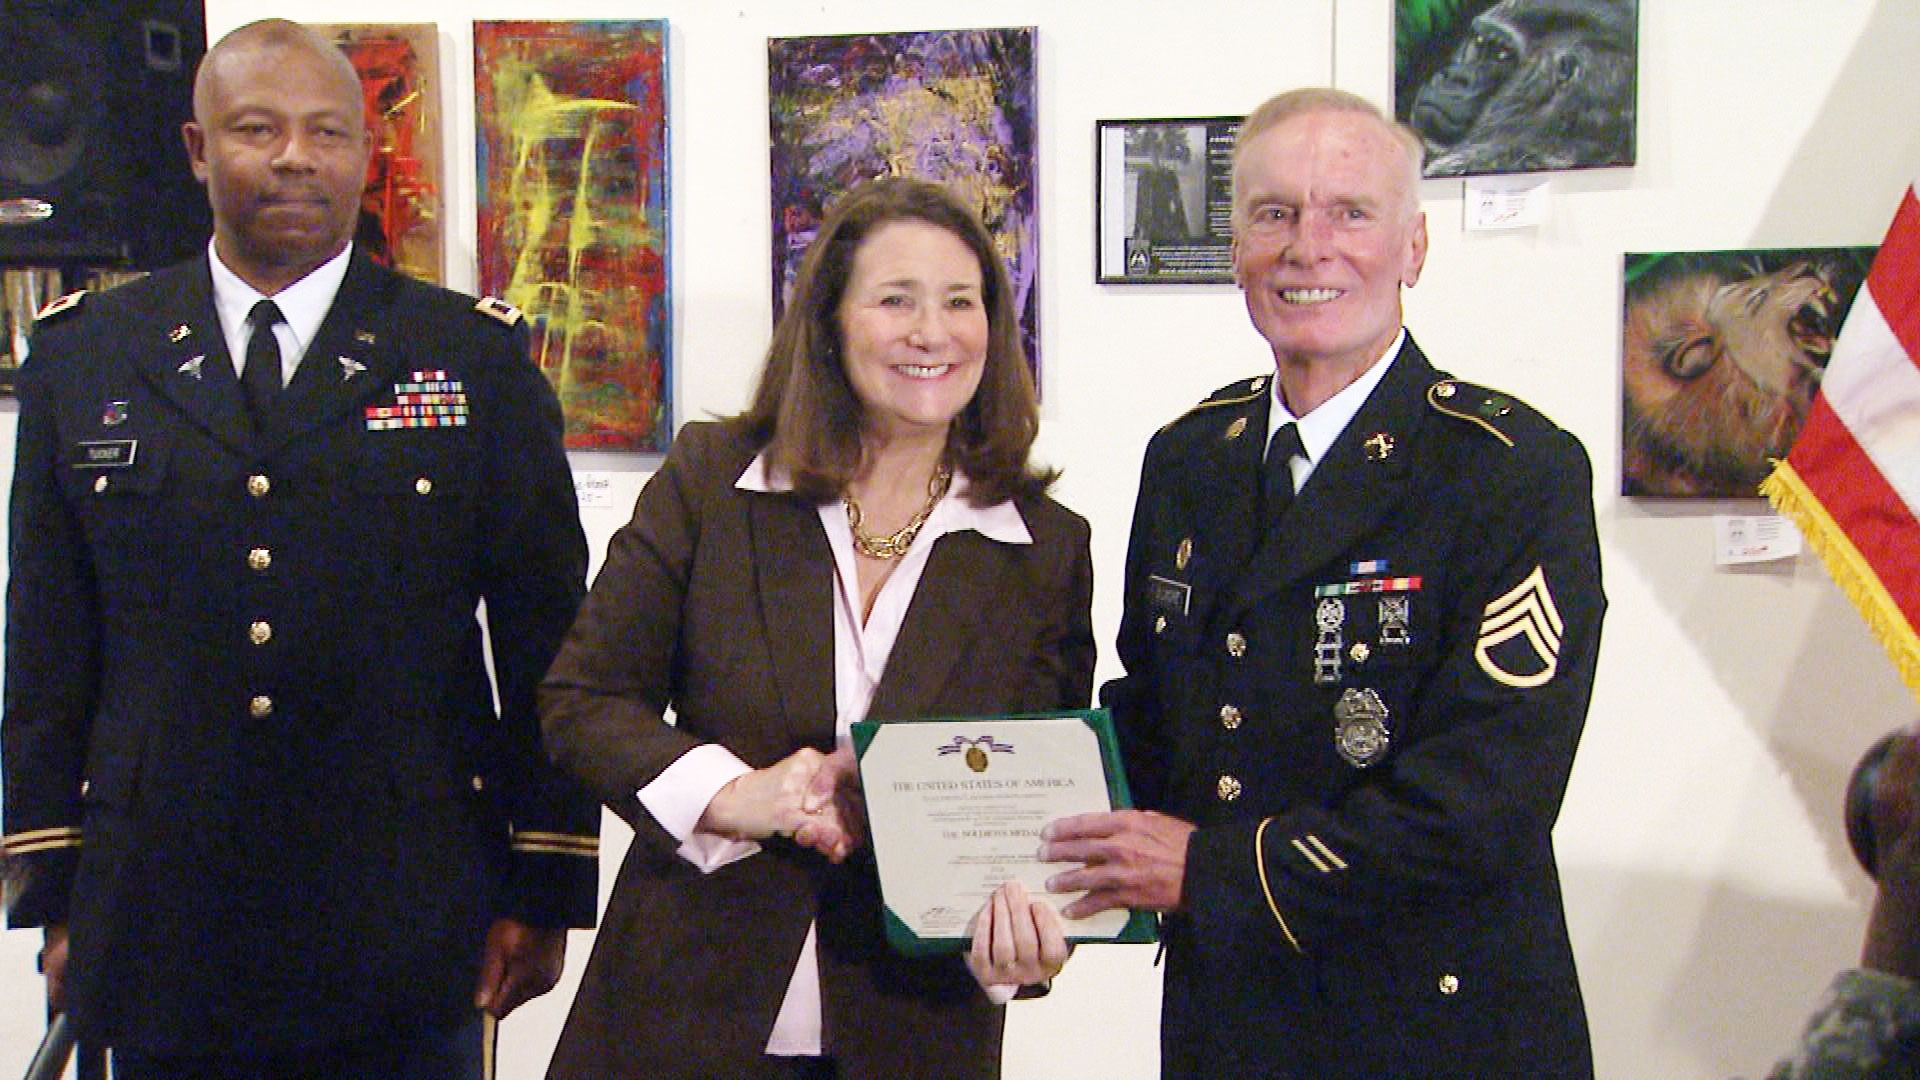 Rep. Diana DeGette presents the Soldier's Medal to Army Spc. Joseph Gilmore (credit: CBS)